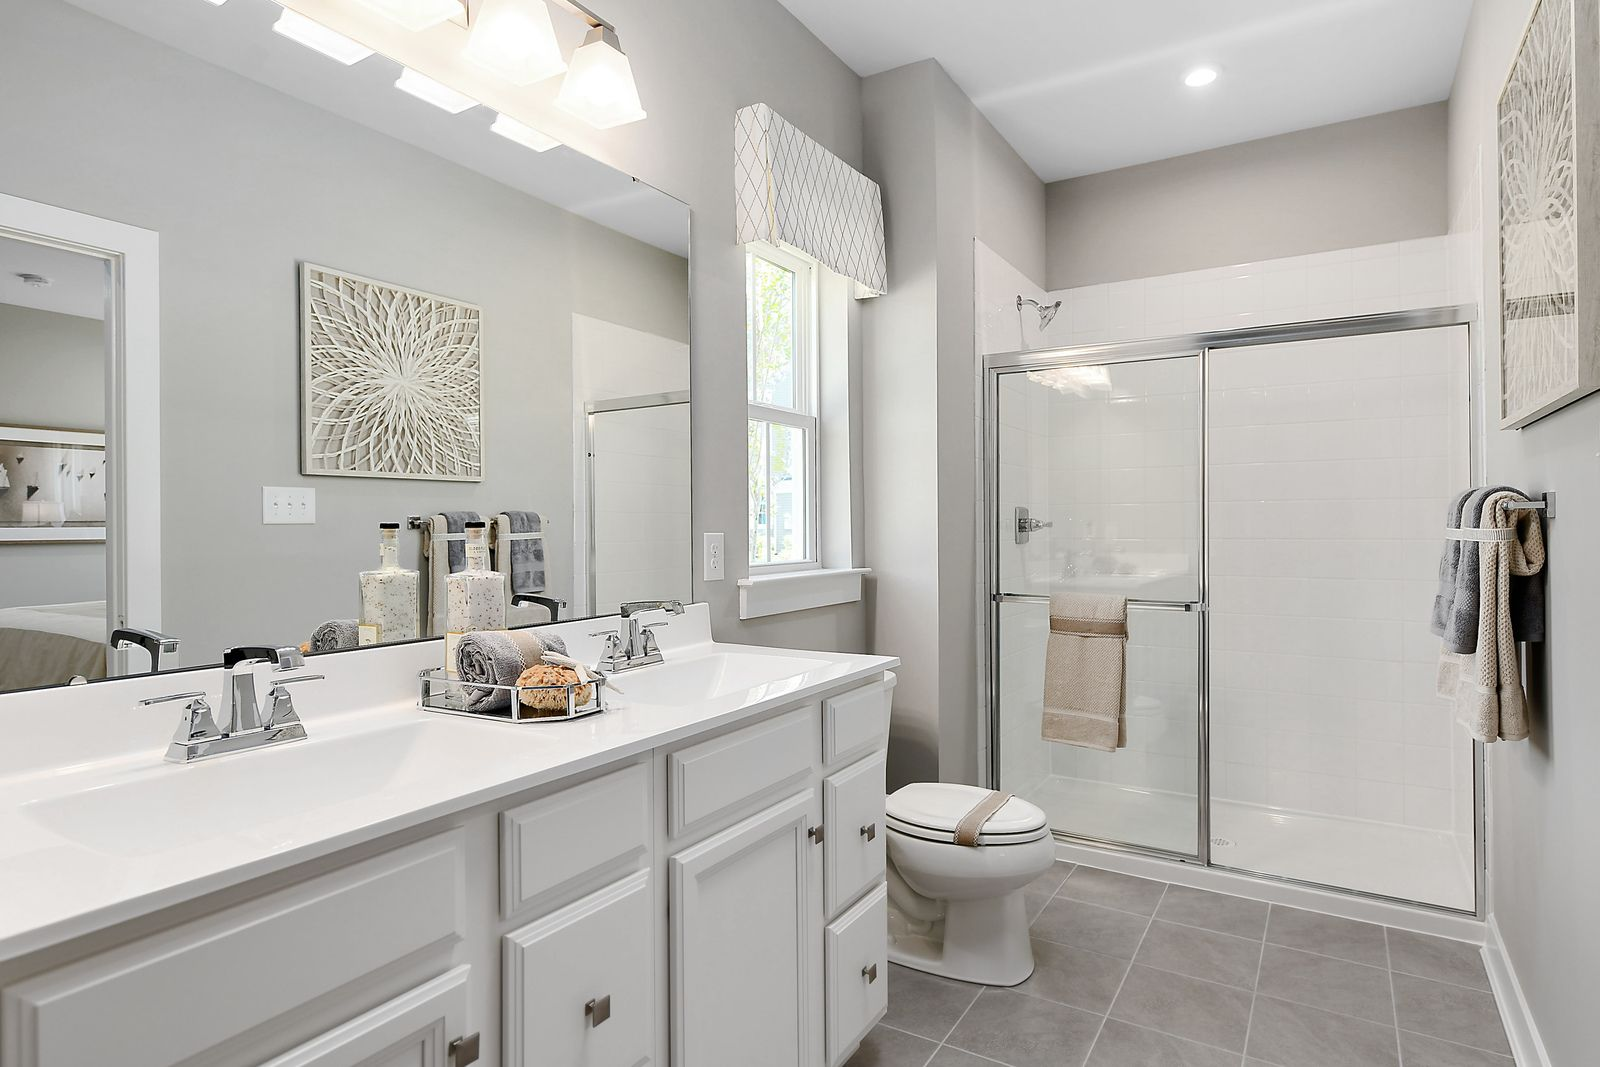 Bathroom featured in the Ashbrooke By Ryan Homes in Washington, MD